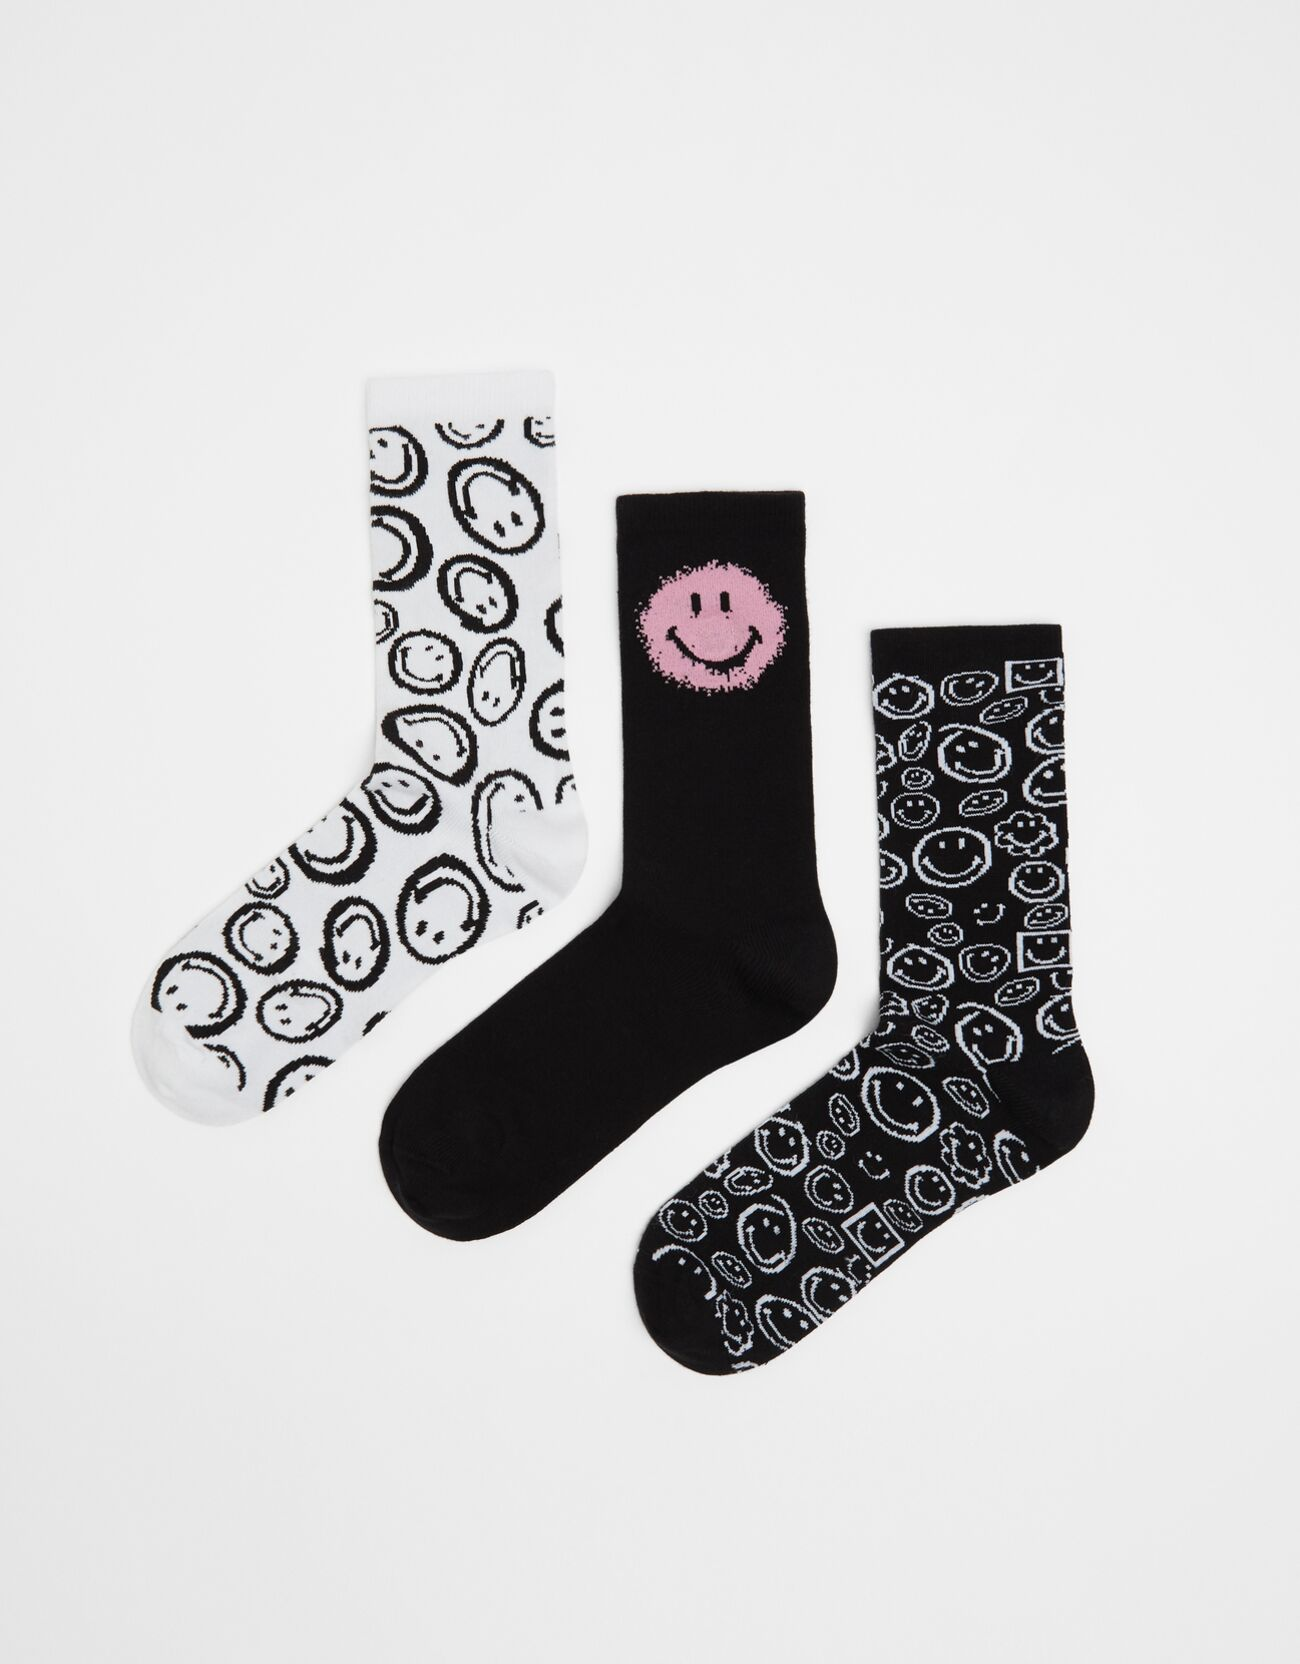 bershka -  Pack Smiley-Socken Herren M Schwarz